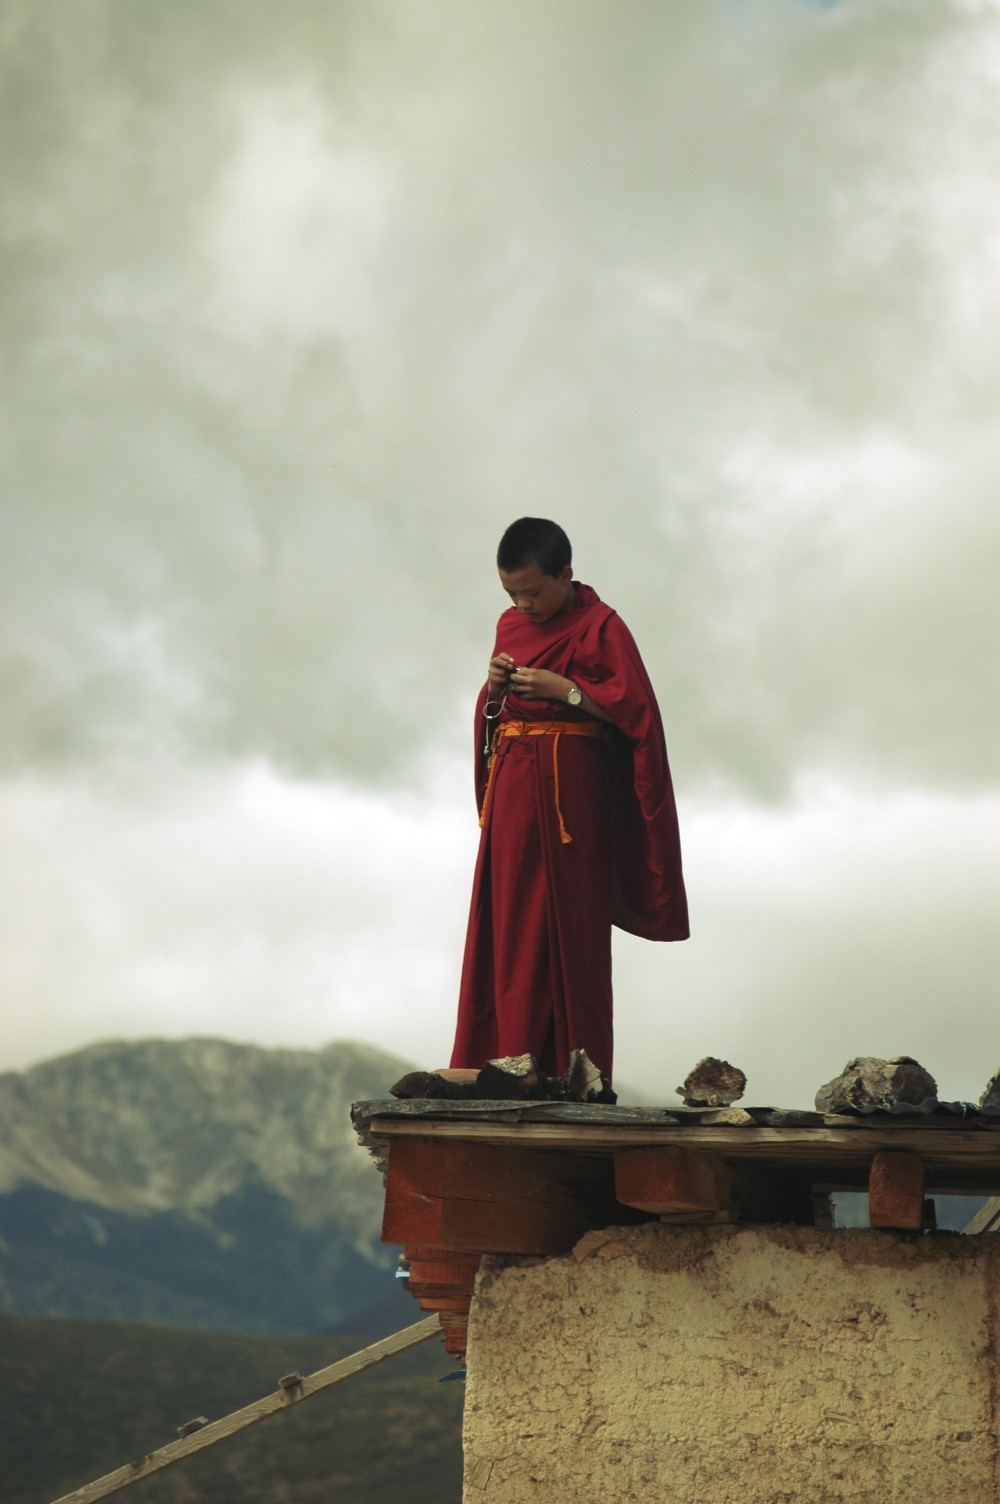 Yunnan monk on roof